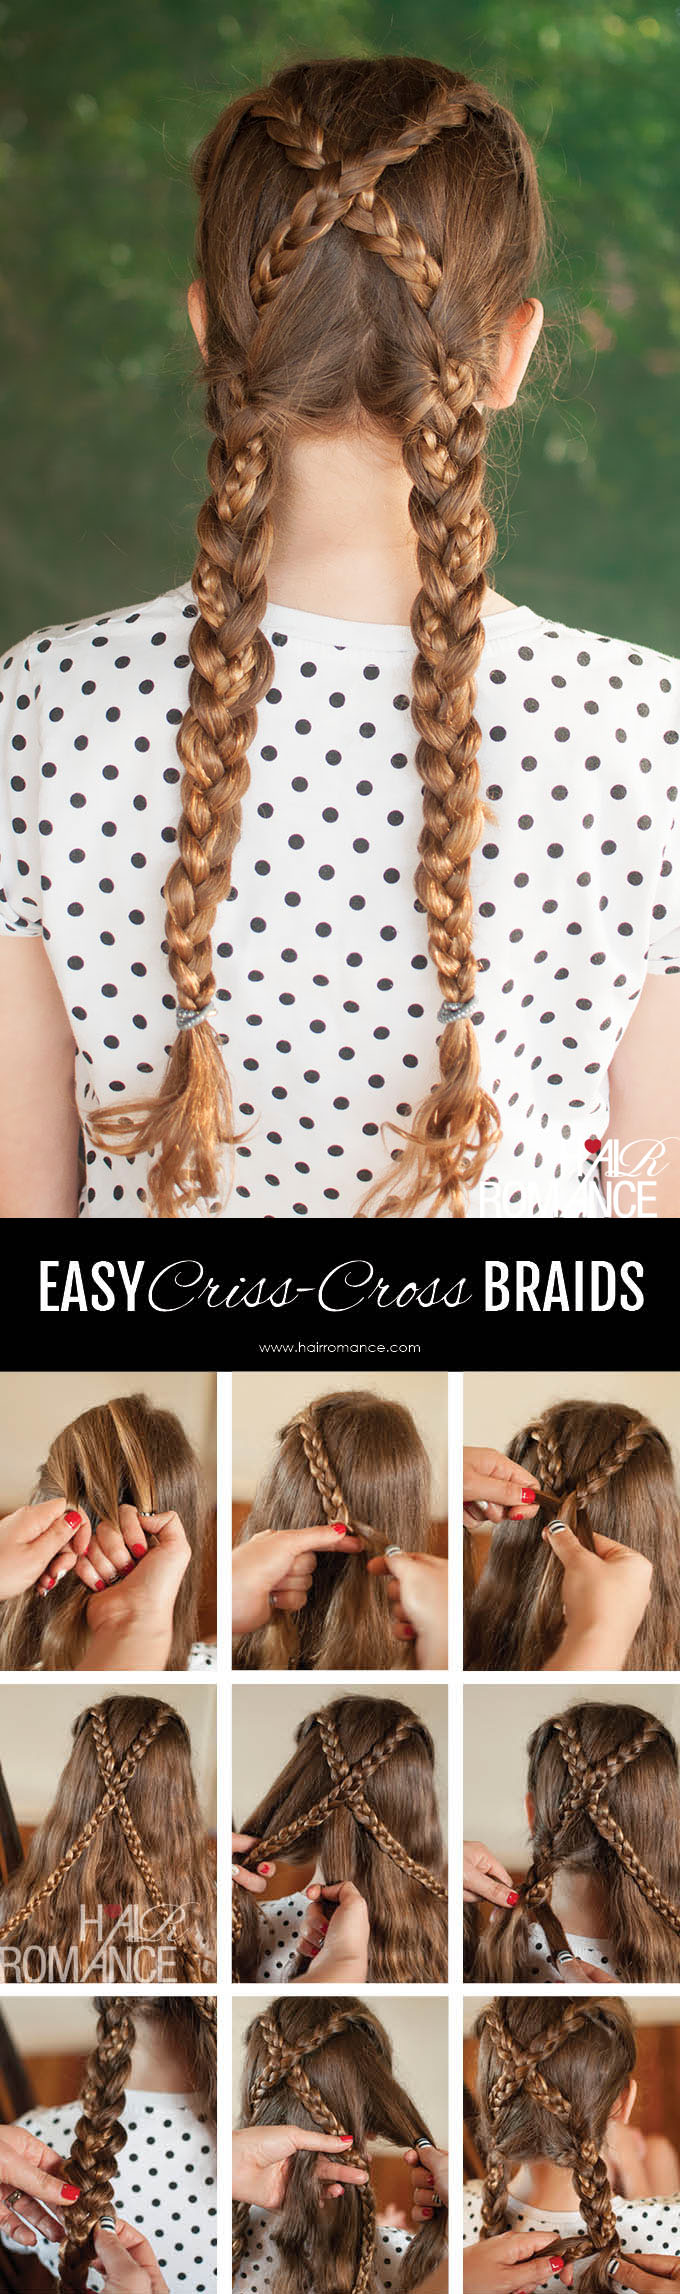 Hair Romance - Back to school hair - criss cross braids hairstyle tutorial 4